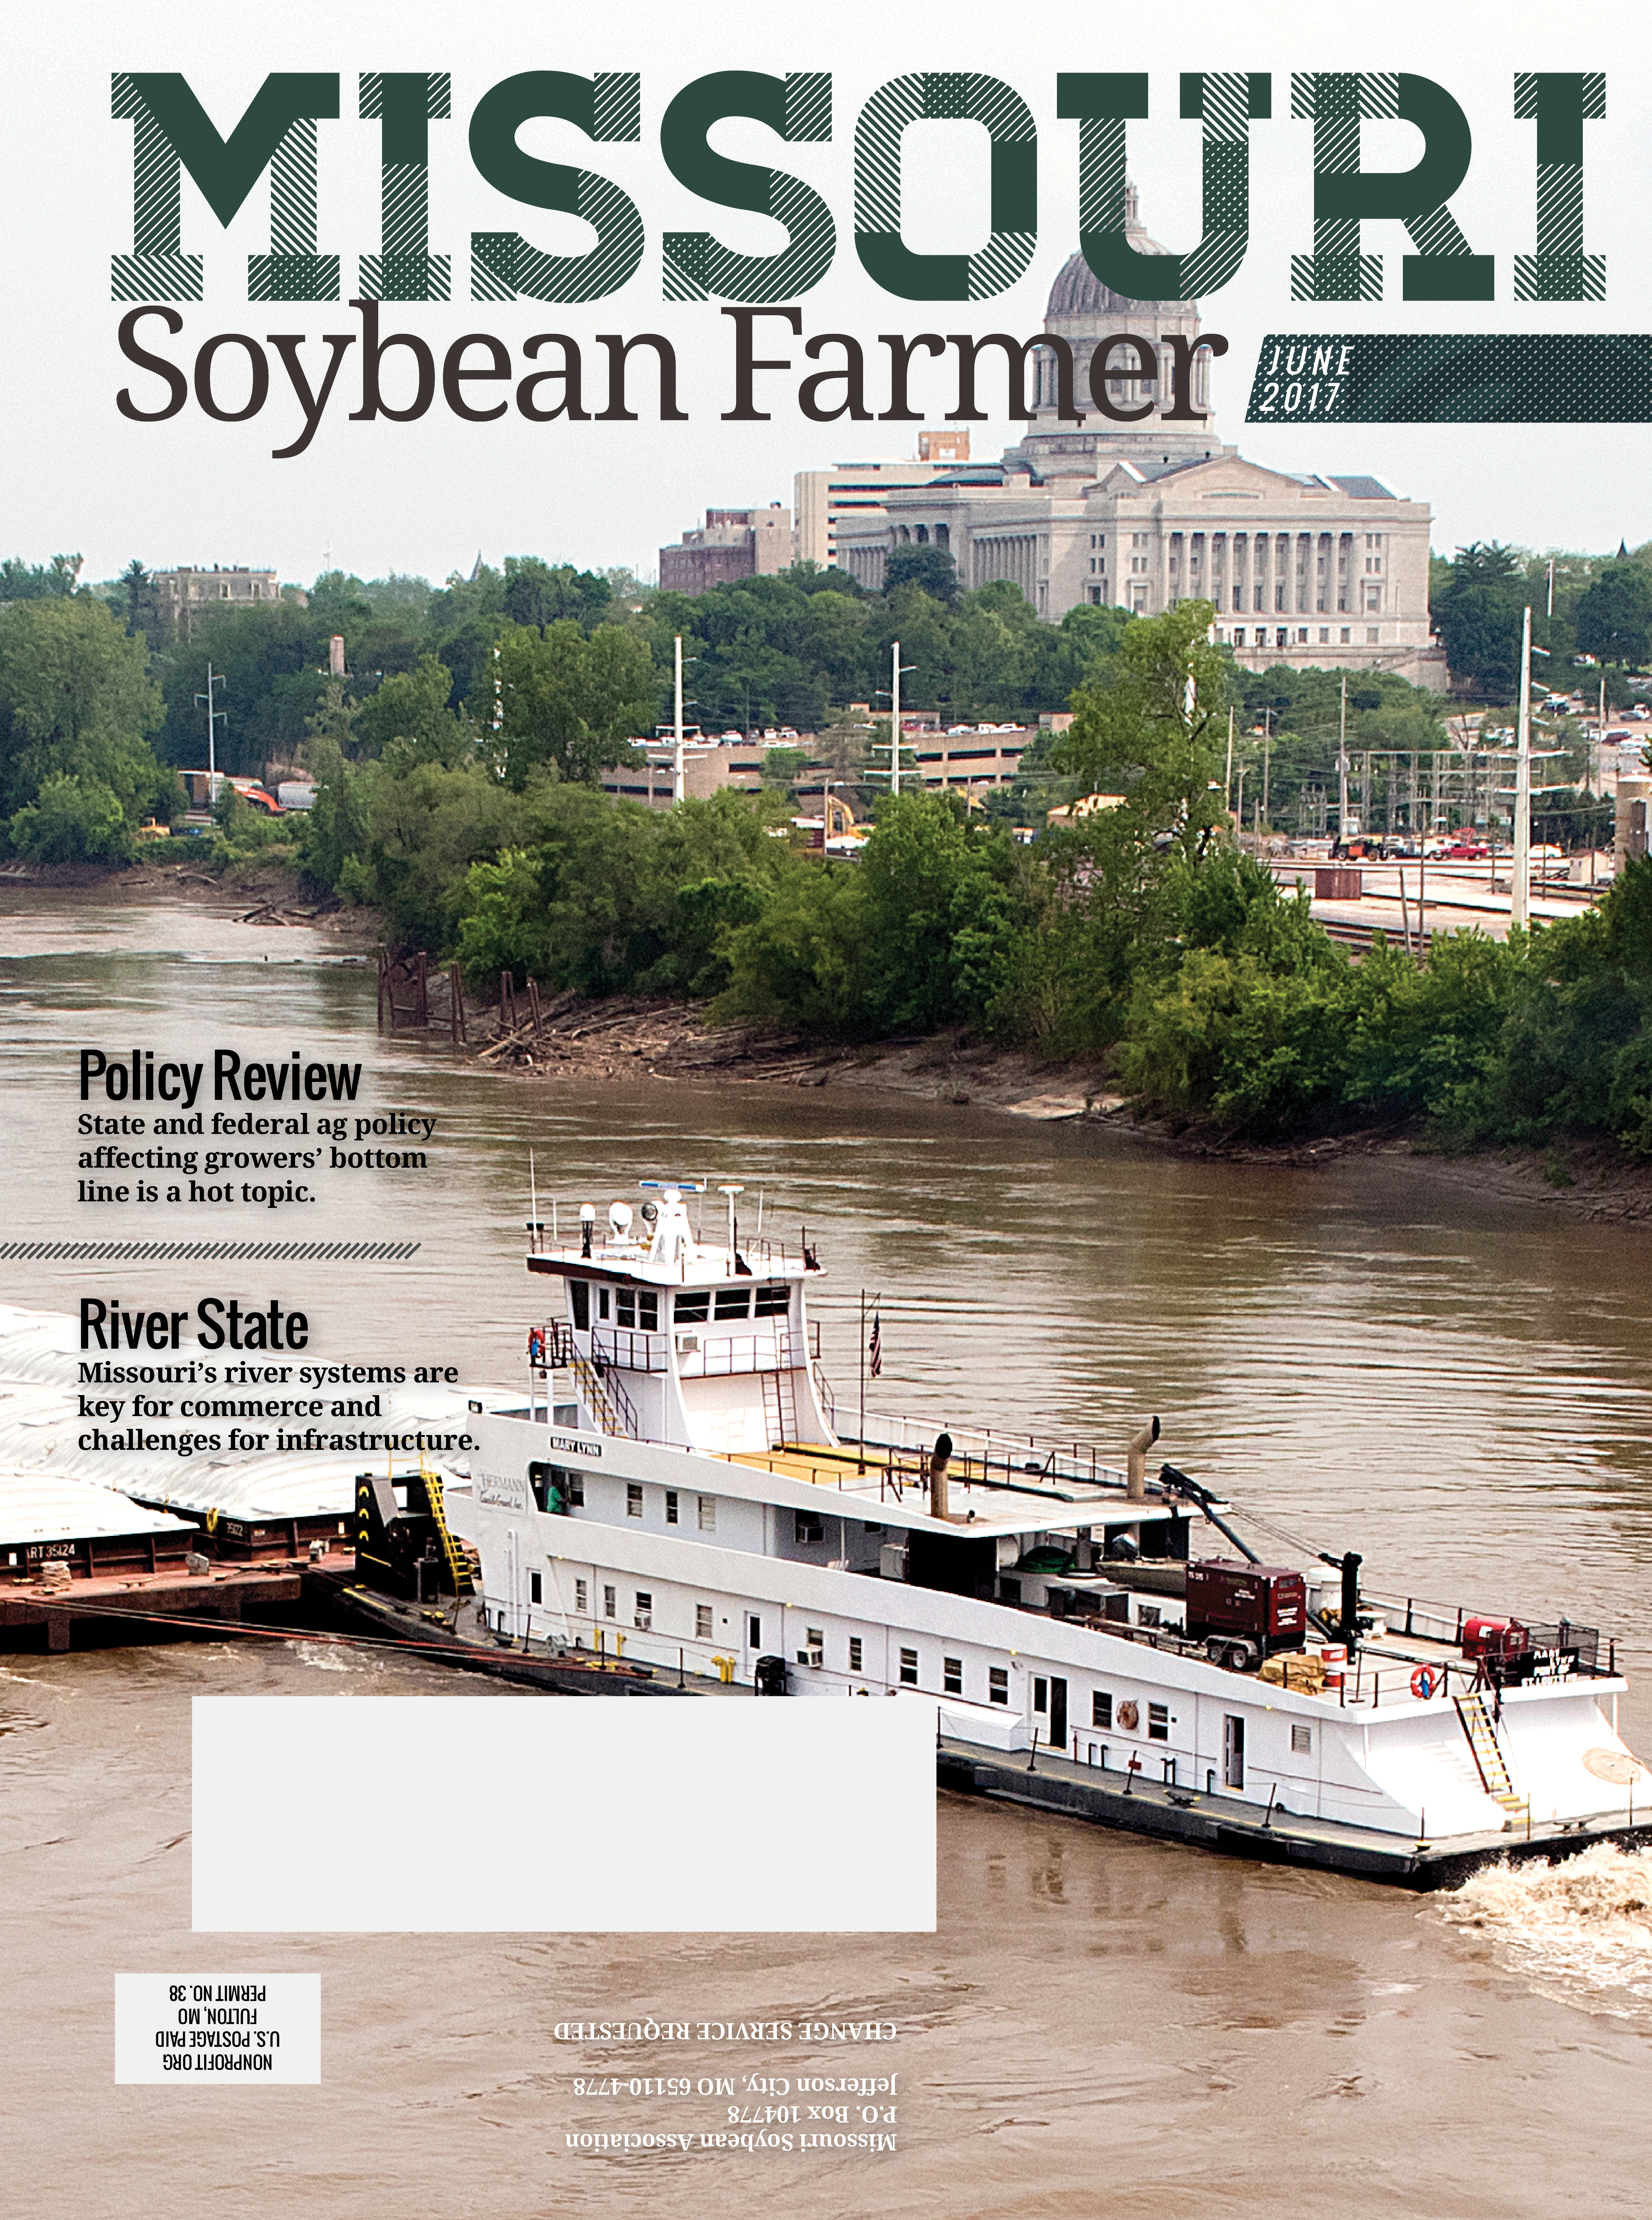 Read the June 2017 Issue of Missouri Soybean Farmer